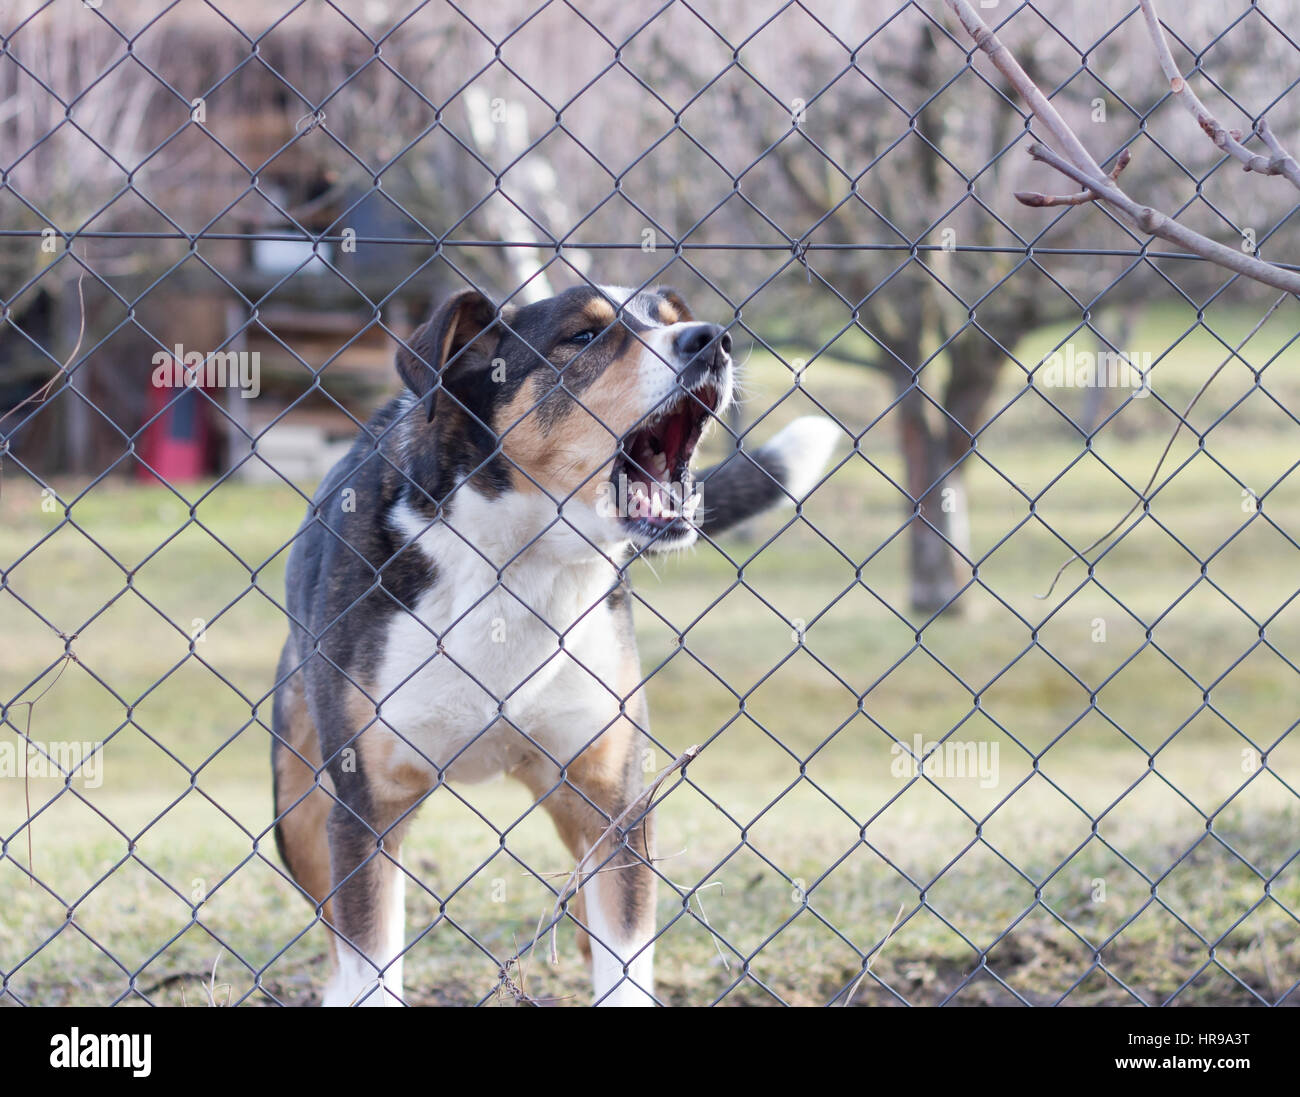 aggressive barking dog behind fence guarding garden Stock Photo